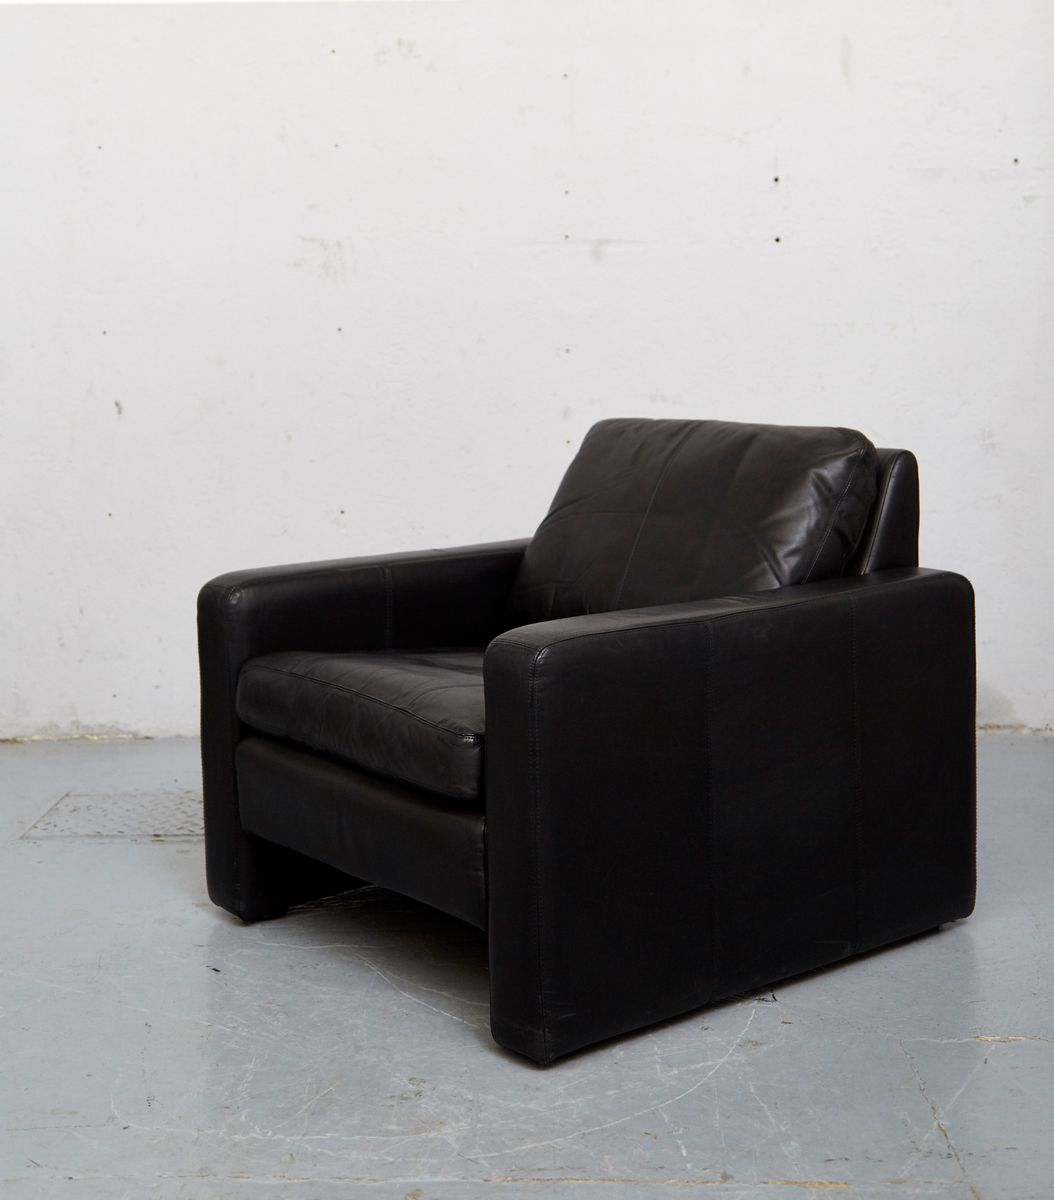 Vintage Conseta Lounge Chair by Friedrich Wilhelm Möller for COR